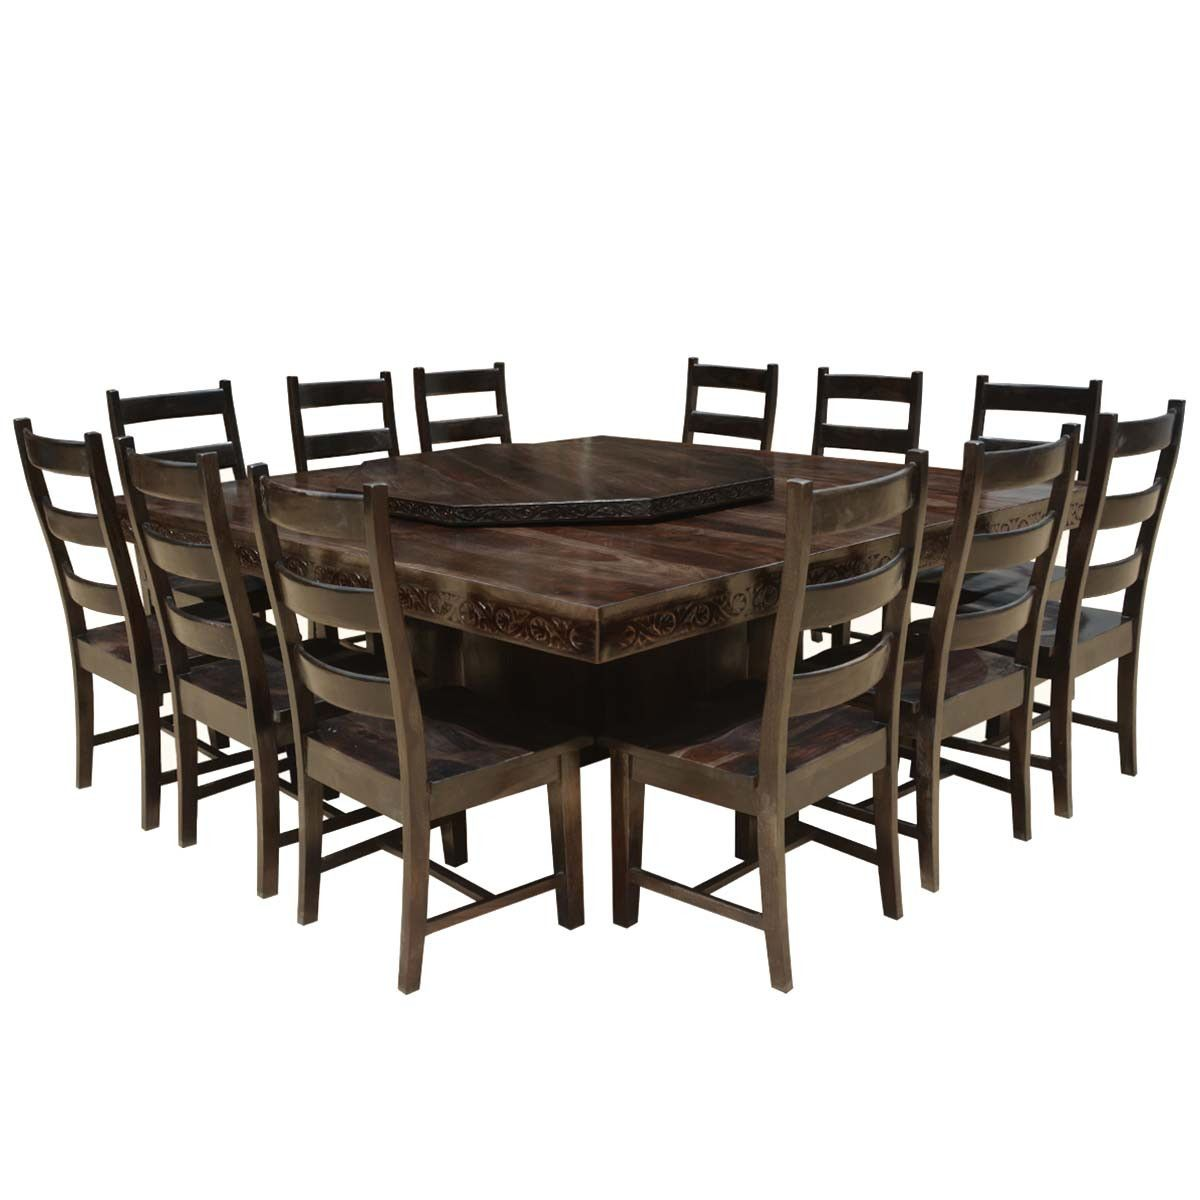 Best Of Pedestal Dining Table Set Home Interior Design Ideas To Build A Good House Design D Square Dining Room Table Large Square Dining Table Dining Table